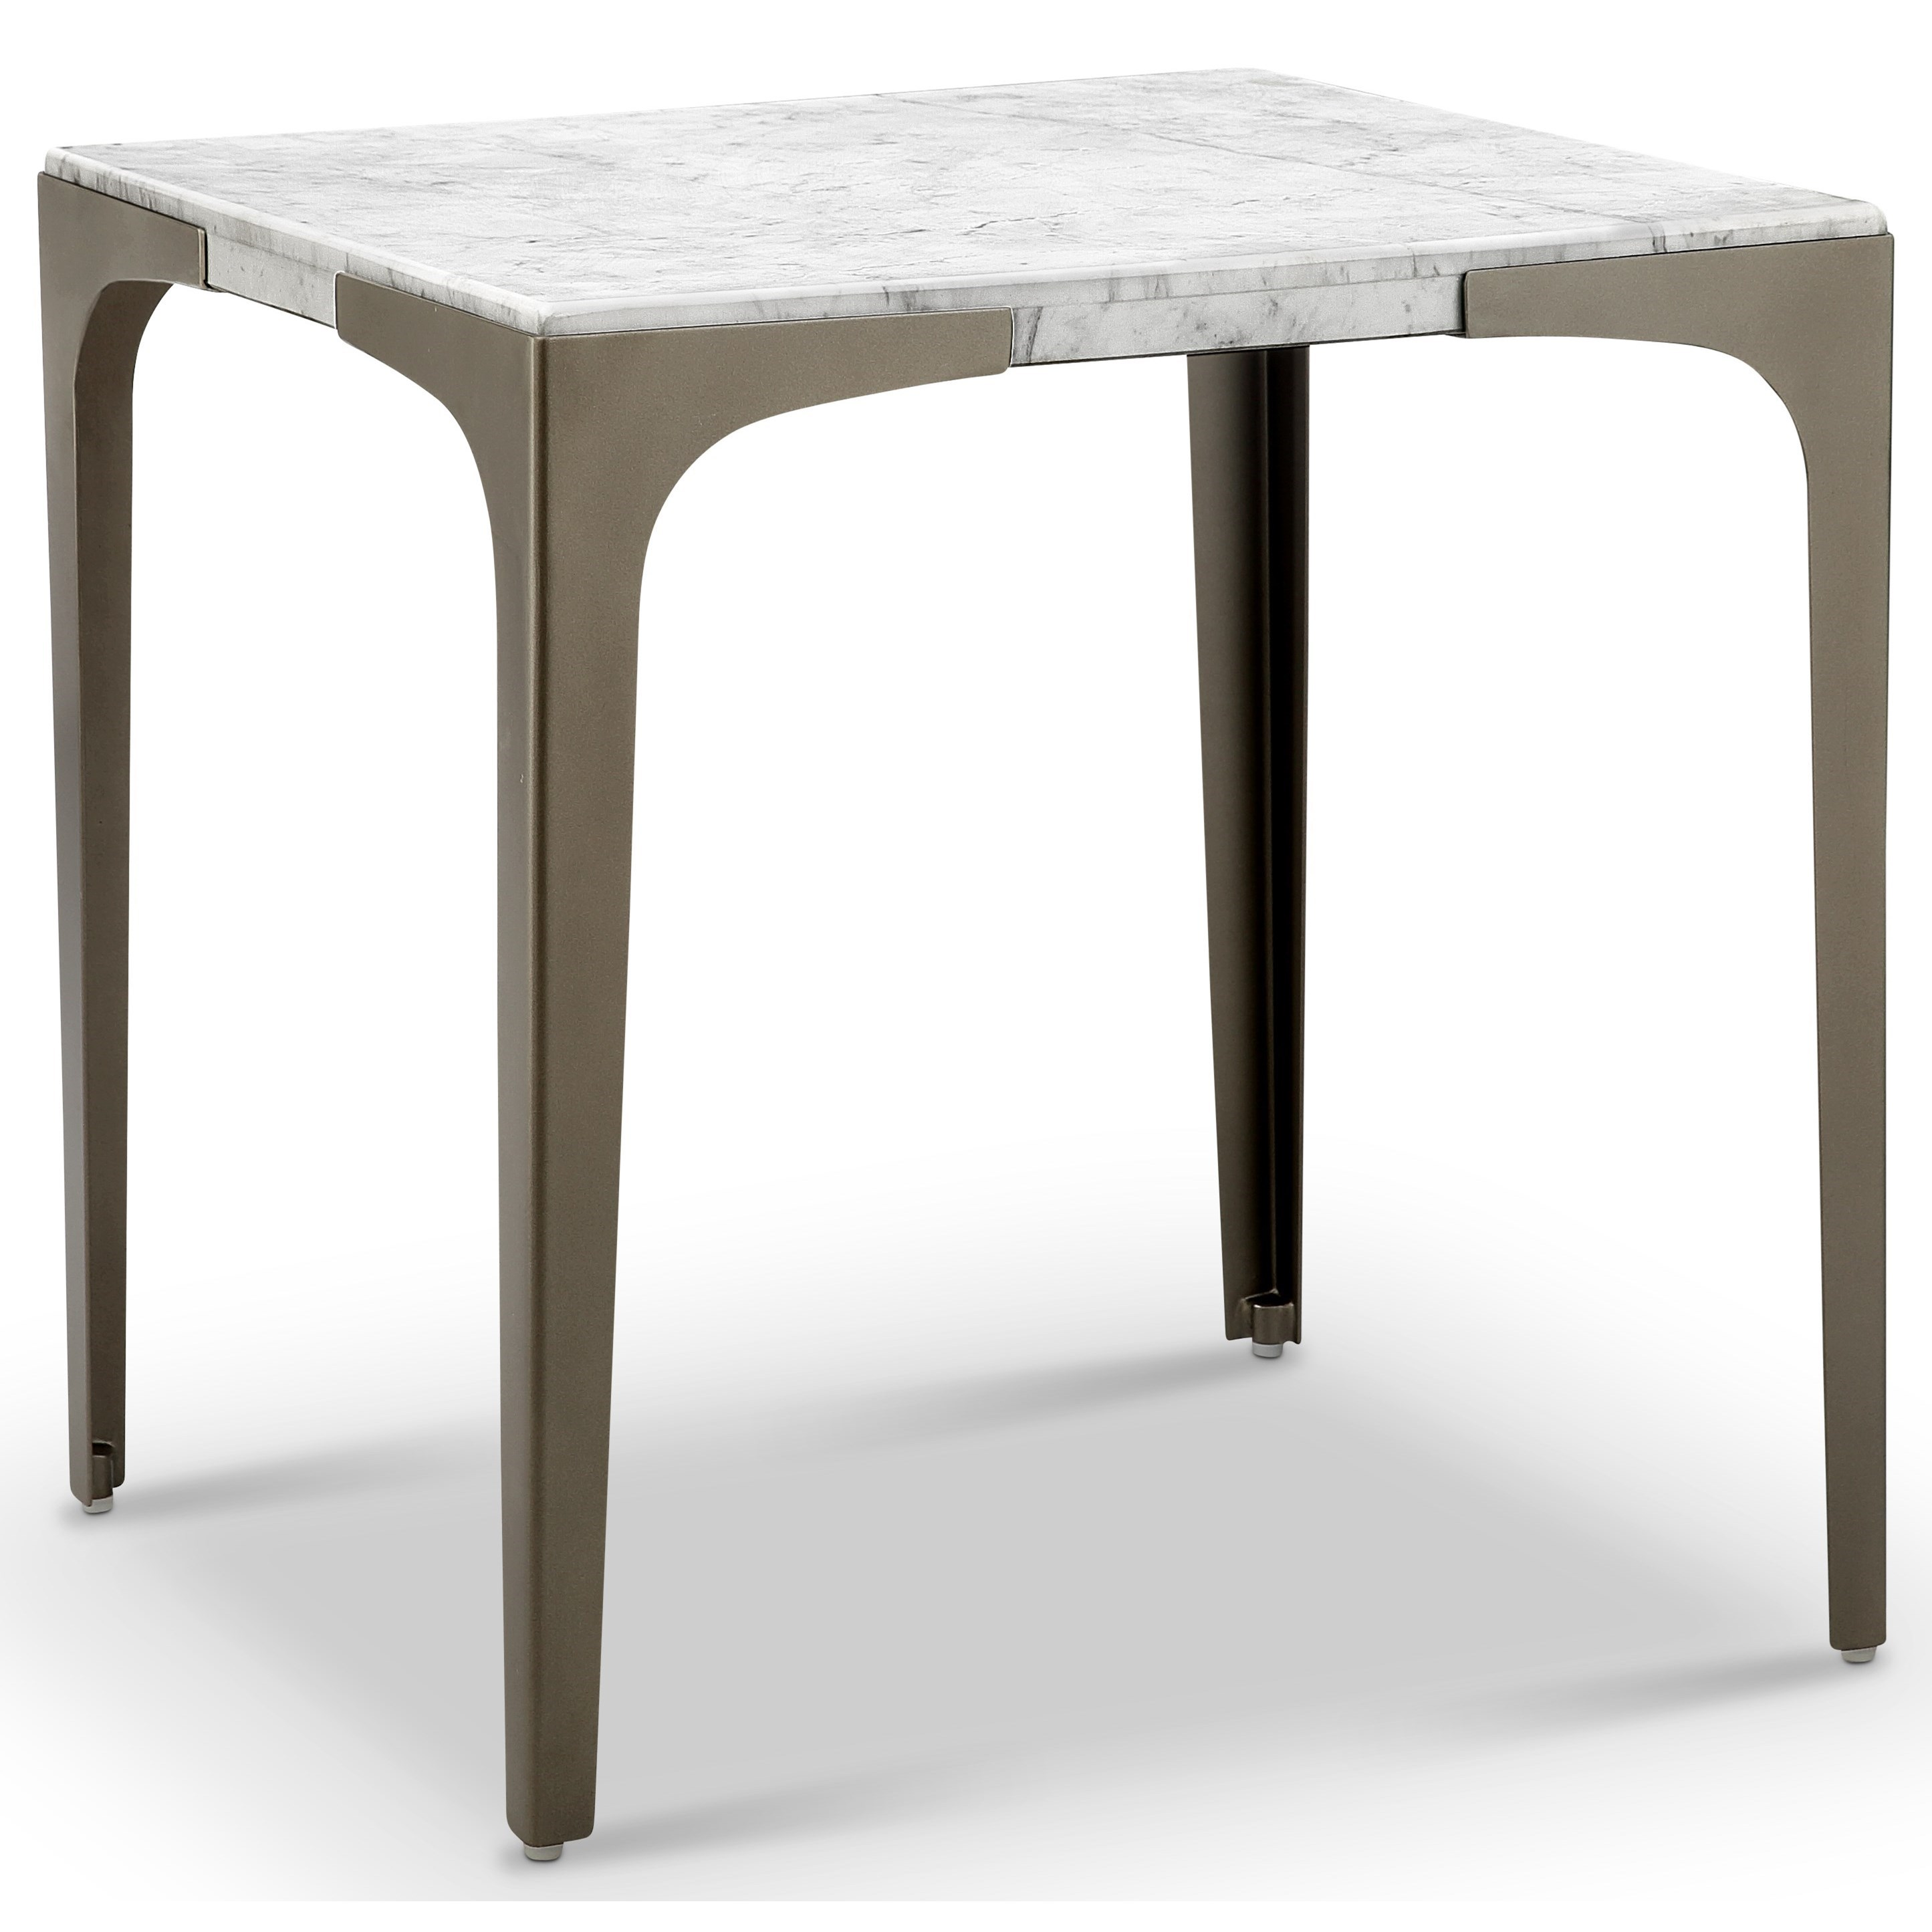 Brilliant Mercer Contemporary End Table With Marble Top By Magnussen Home At Sam Levitz Furniture Home Interior And Landscaping Spoatsignezvosmurscom